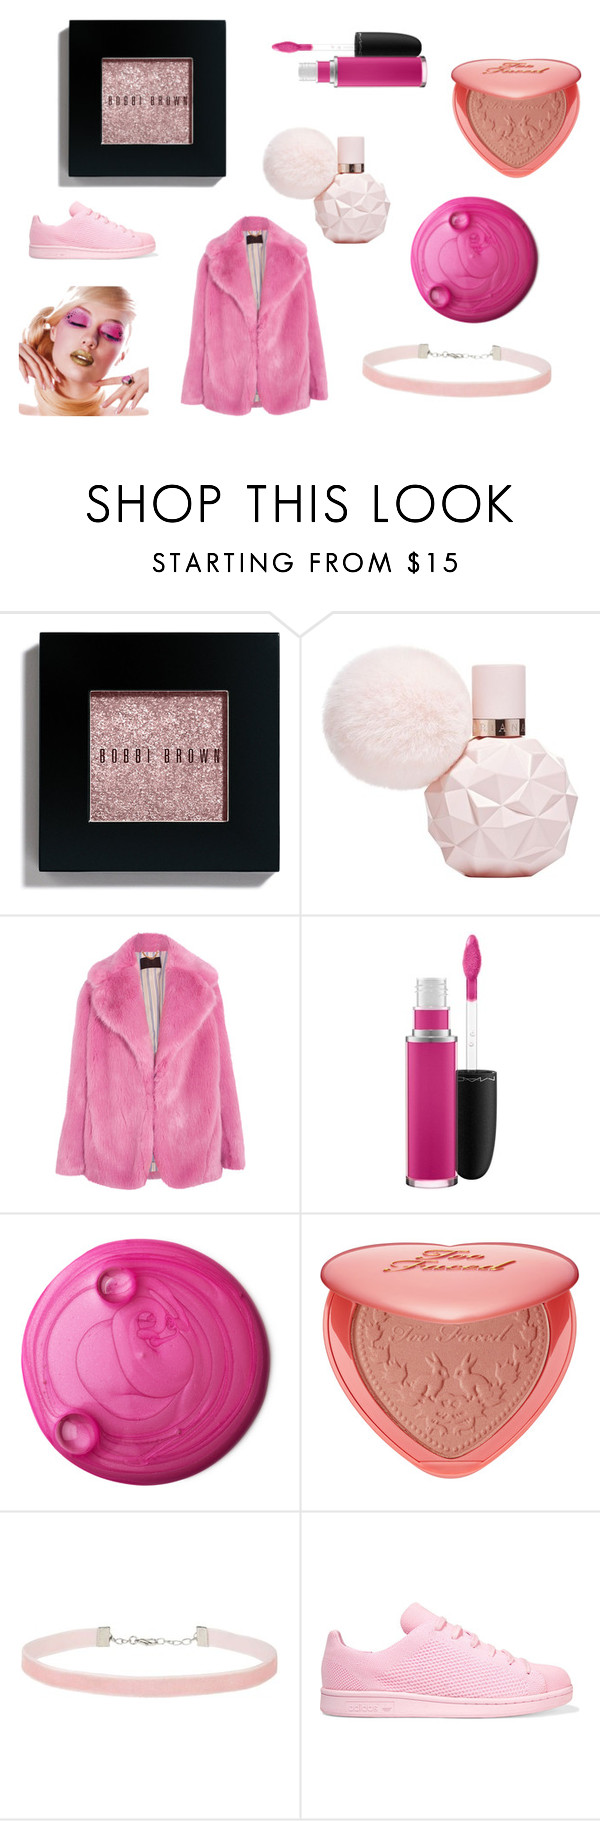 """Blue"" by irispoppelaars ❤ liked on Polyvore featuring Bobbi Brown Cosmetics, J.Crew, MAC Cosmetics, Too Faced Cosmetics, Miss Selfridge and adidas Originals"